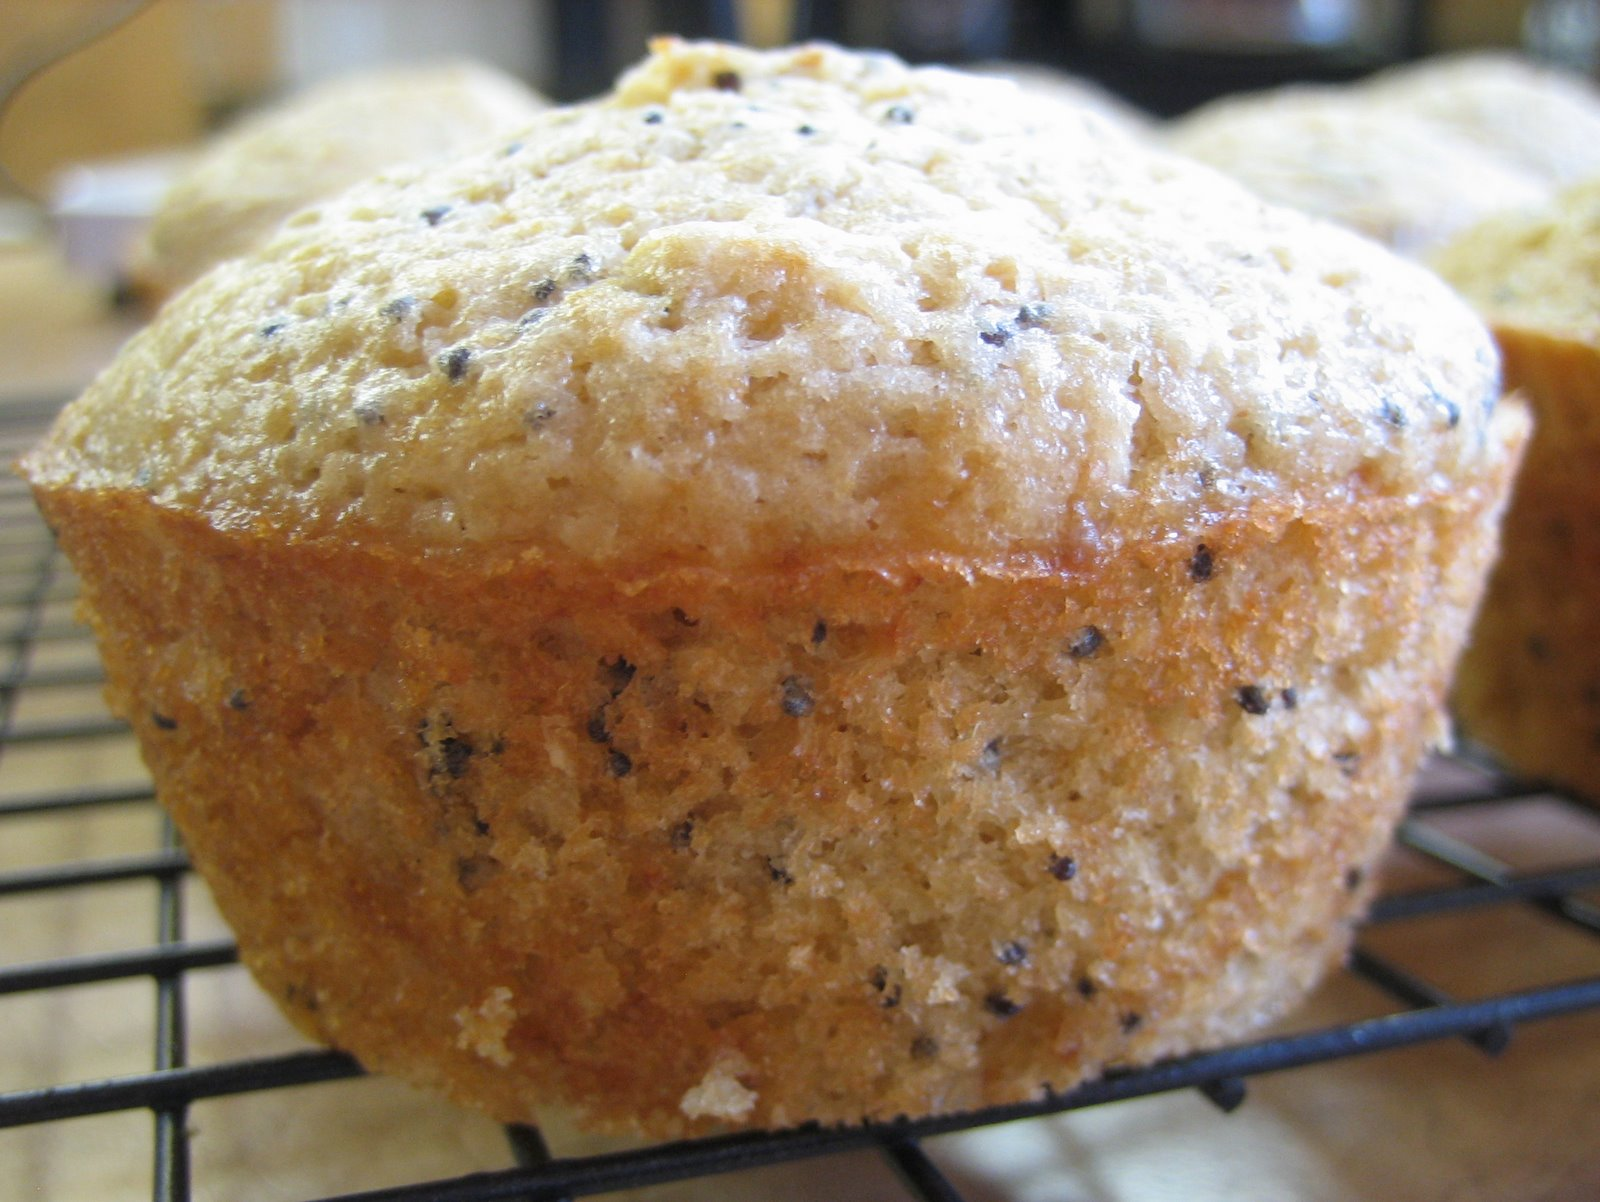 Happy in Dole Valley: Muffin Monday - Lemon Poppy Seed Muffins